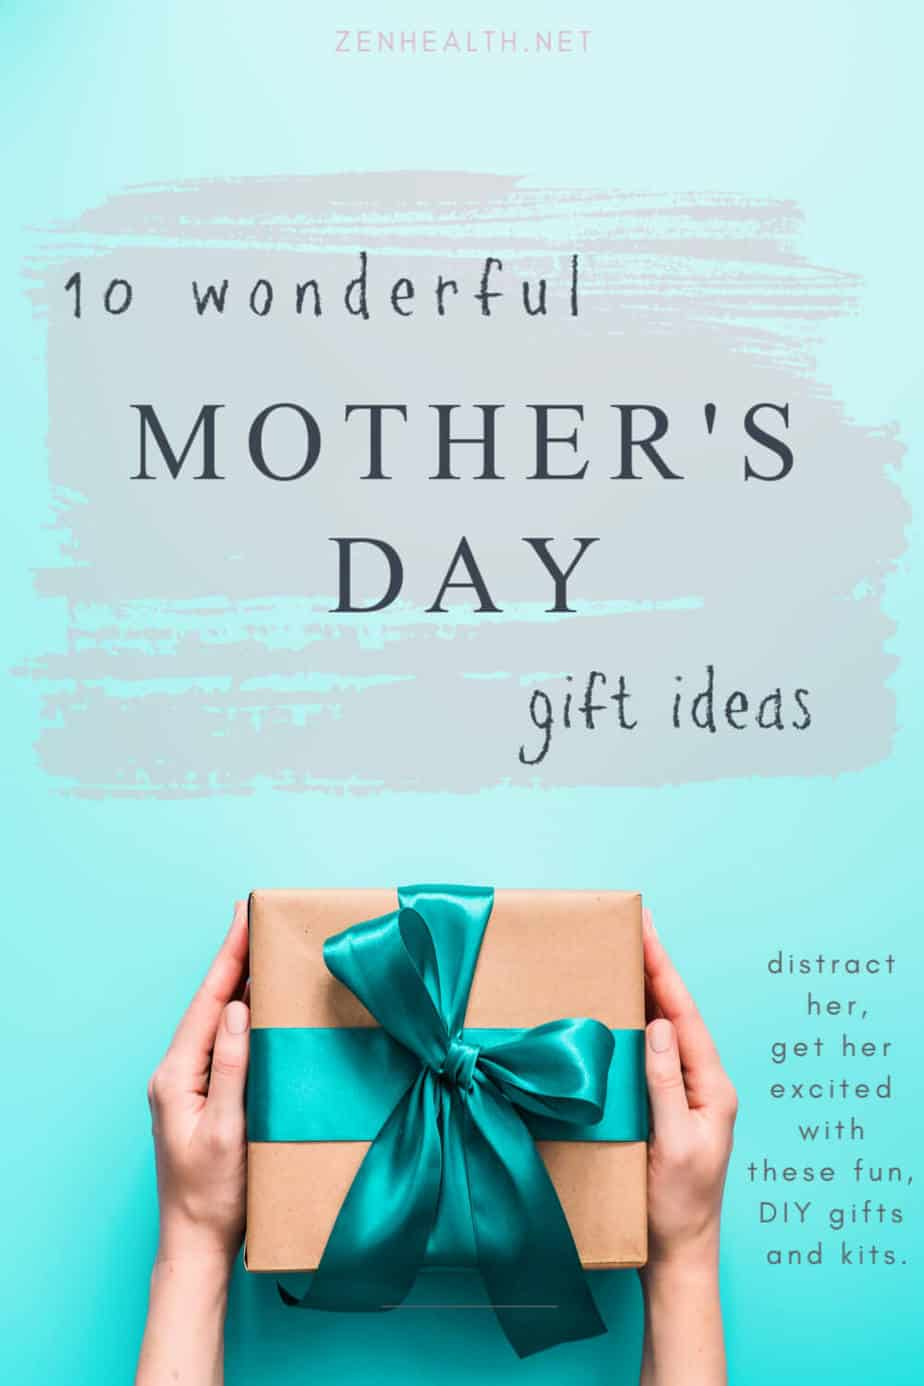 10 wonderful mother's day gift ideas